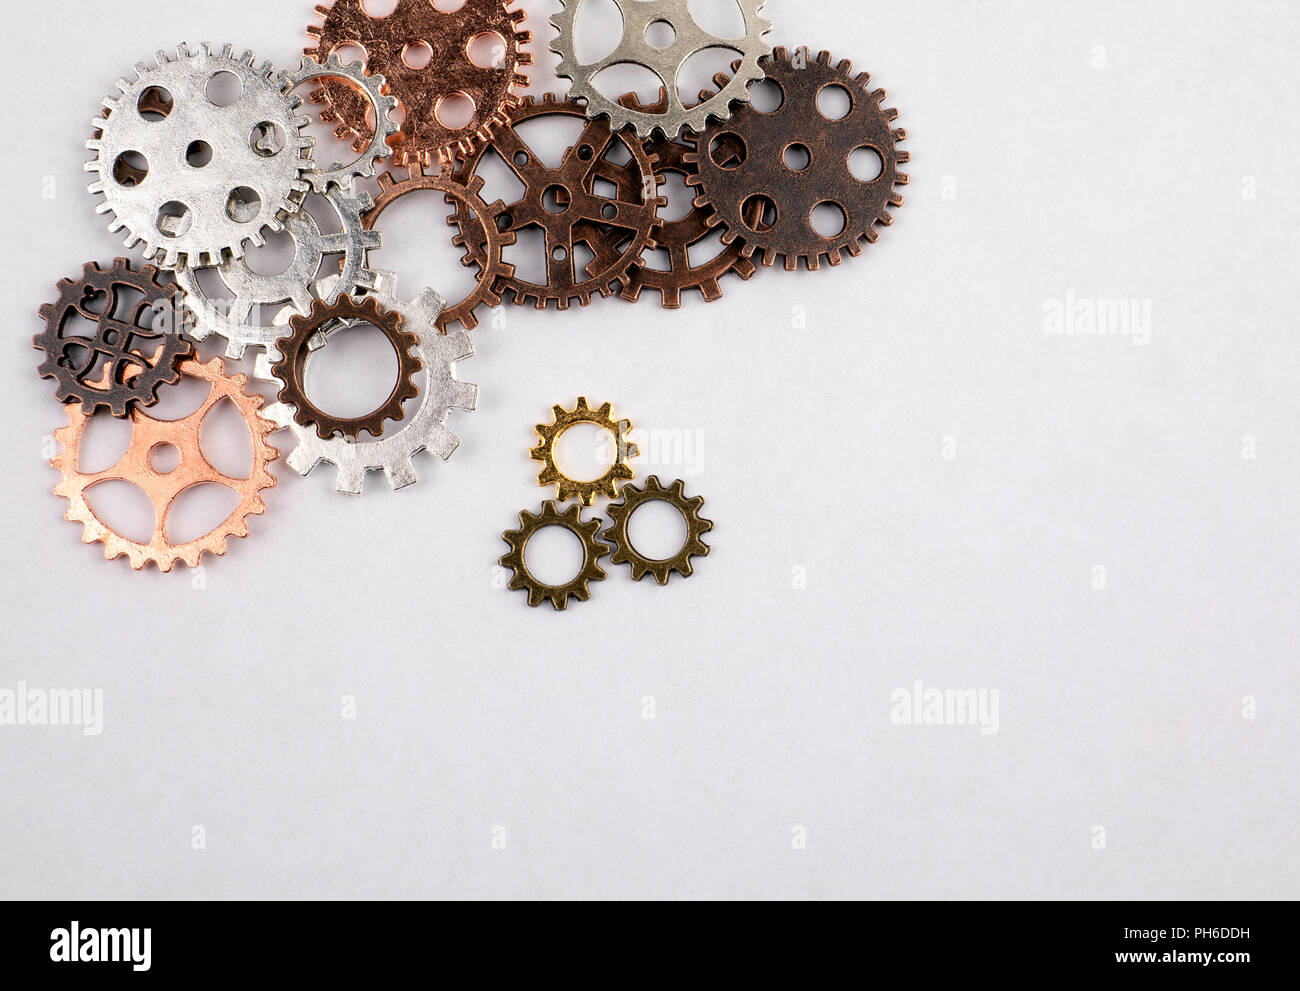 Different sizes and colored gears on a white background - Stock Image